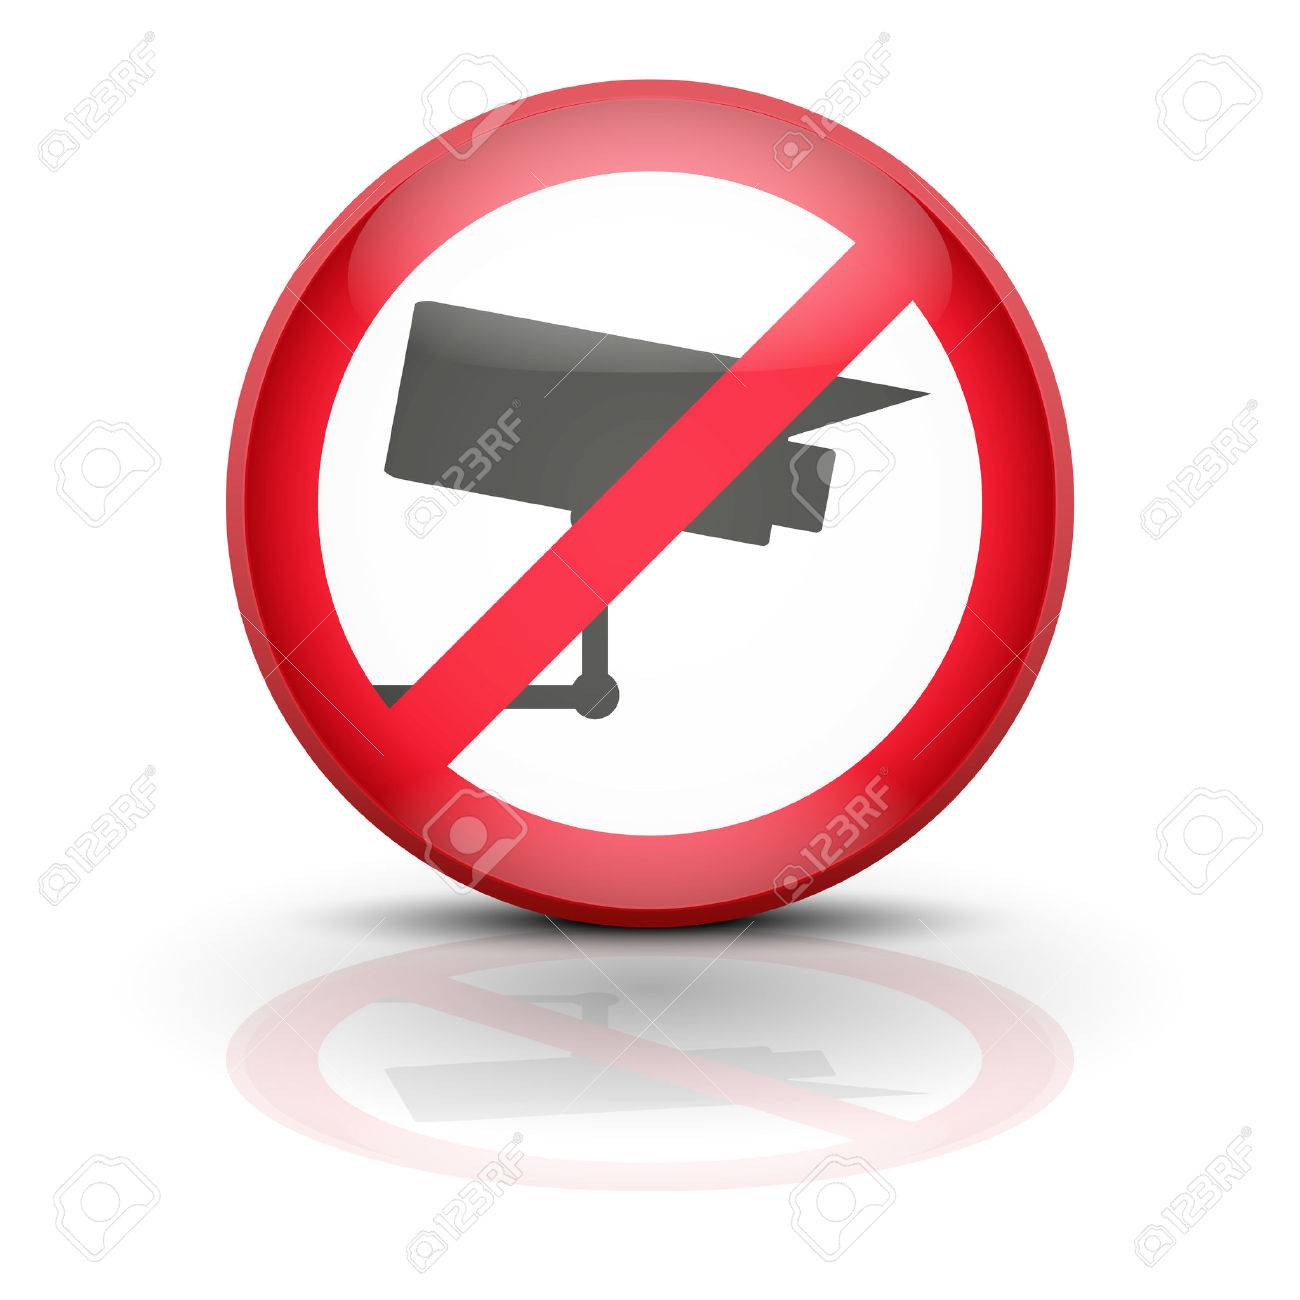 Surveillance Cameras. Sign ban wiretapping, surveillance and espionage. No supervision, no prosecution, no spyware. Vector illustration, editable and isolated. Stock Vector - 23463829